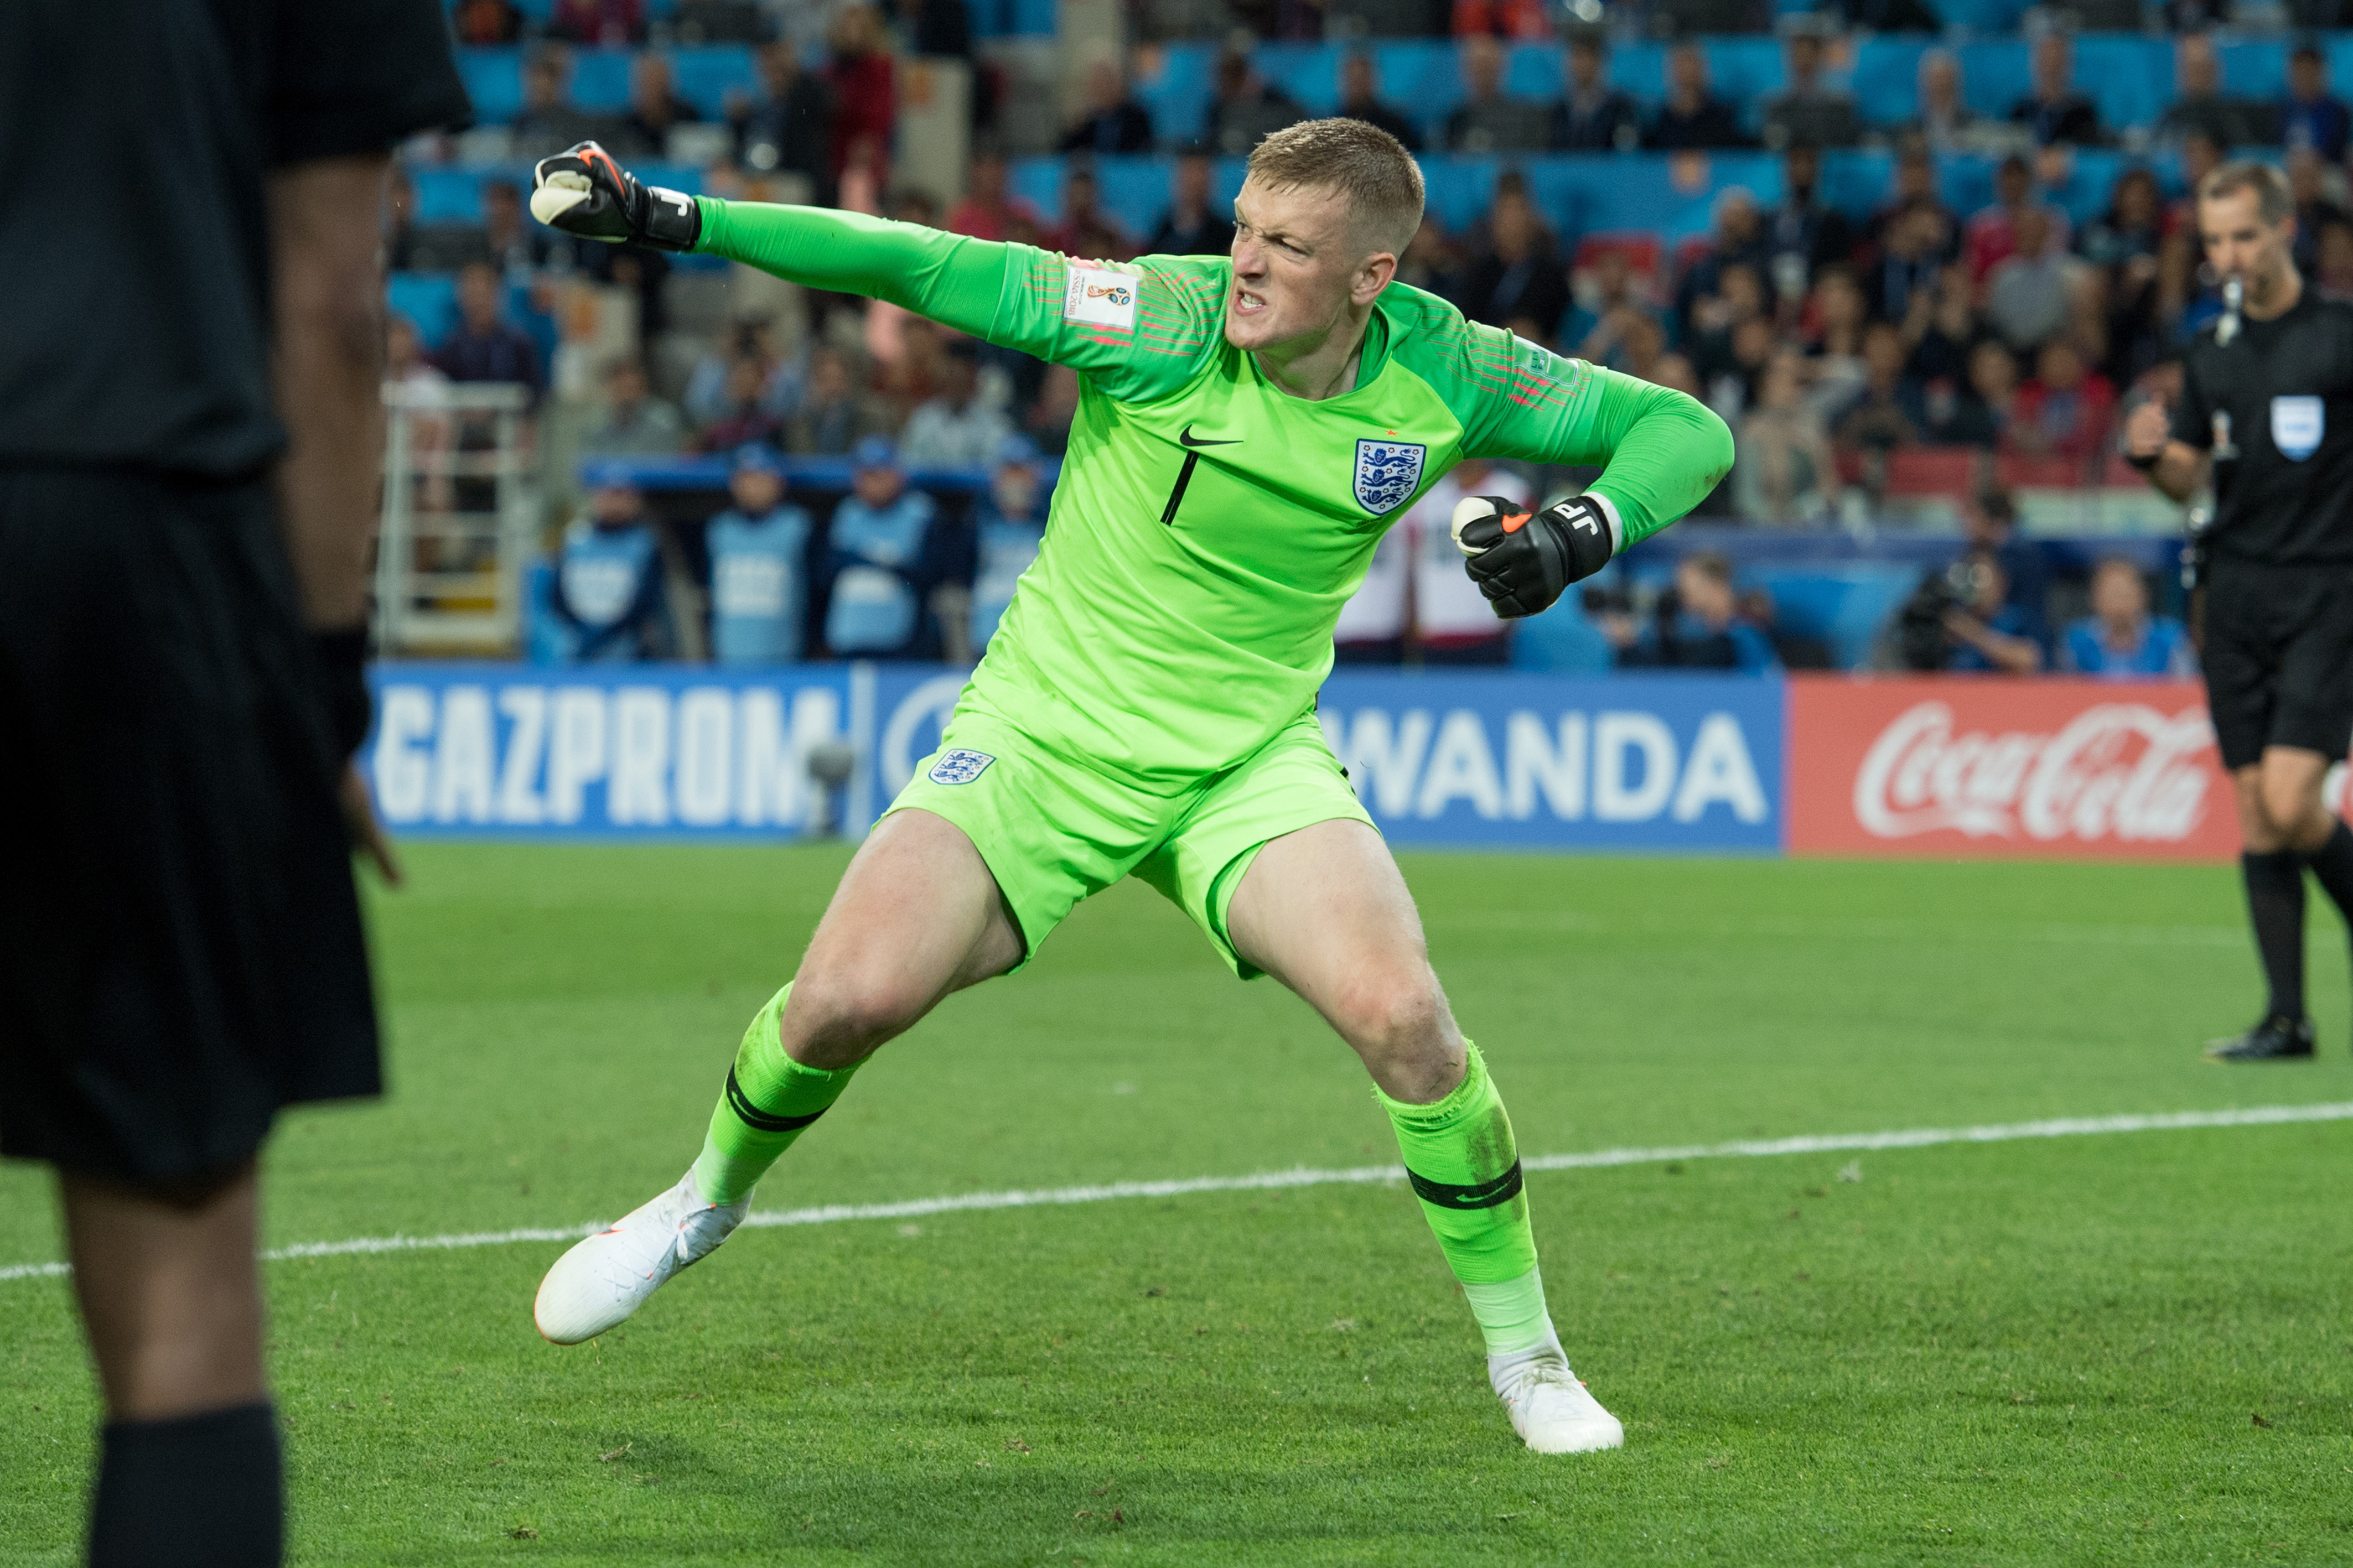 Pickford became a national hero in Russia. Image: PA